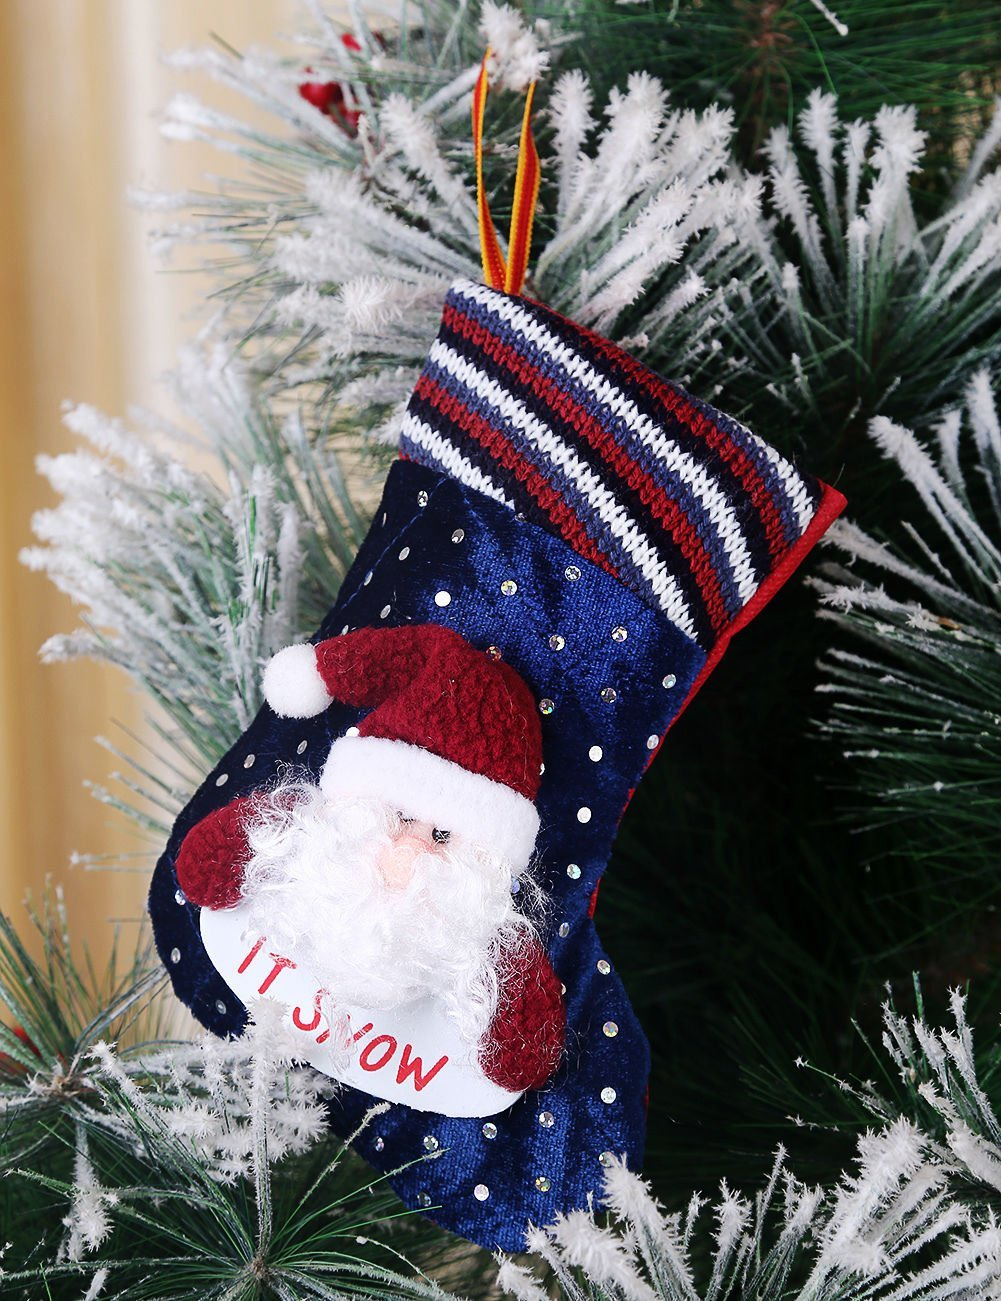 get quotations christmas trees indoor hanging stockings decorating christmaschristmas decorations outdoor snowman santa claus deer bears